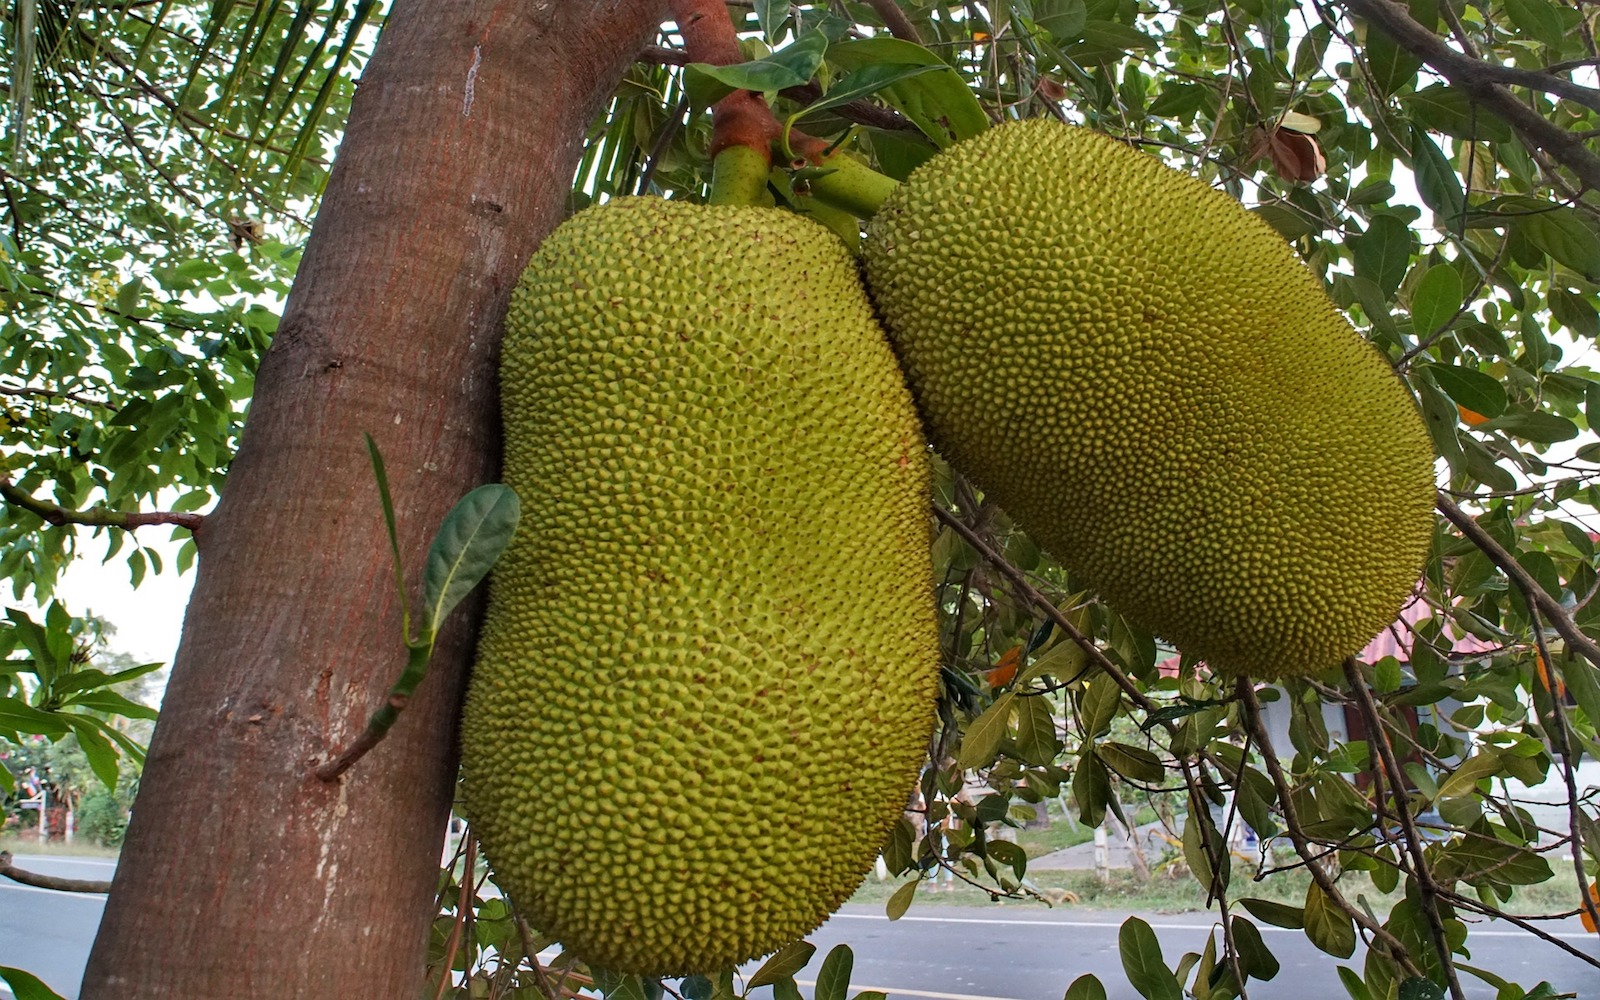 Jackfruit hanging on tree